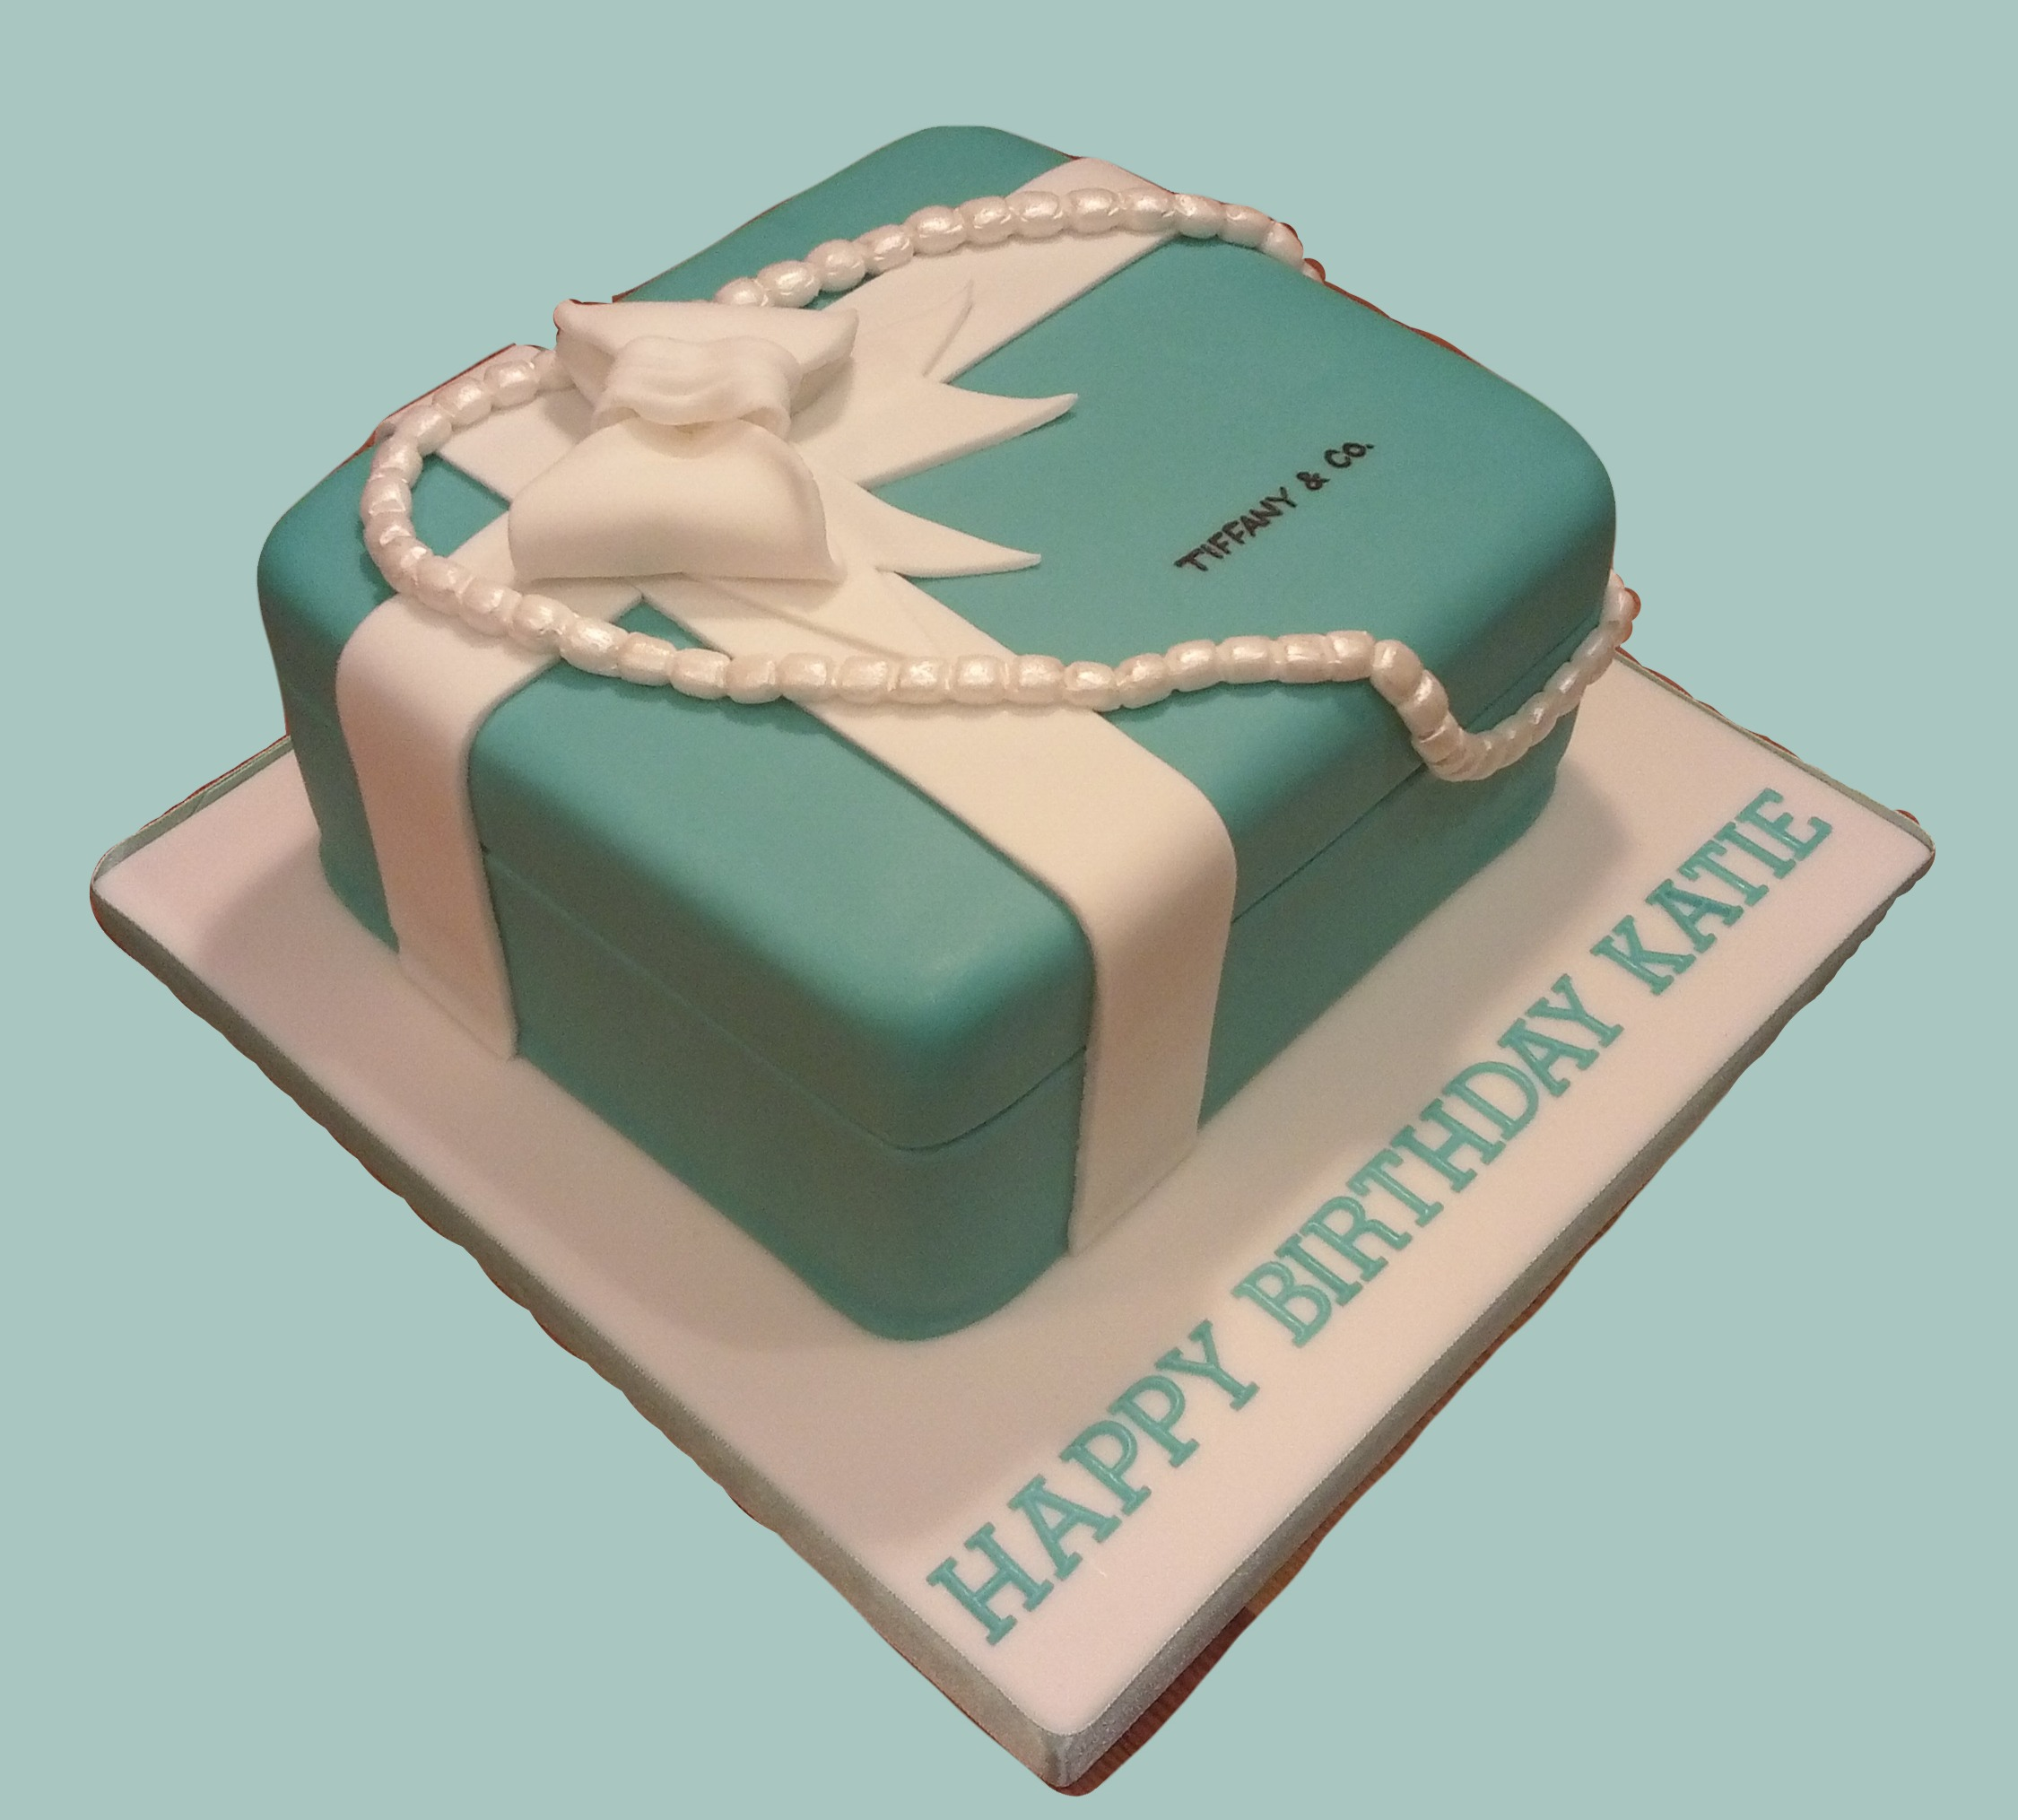 Tiffany Jewellery Box Cake